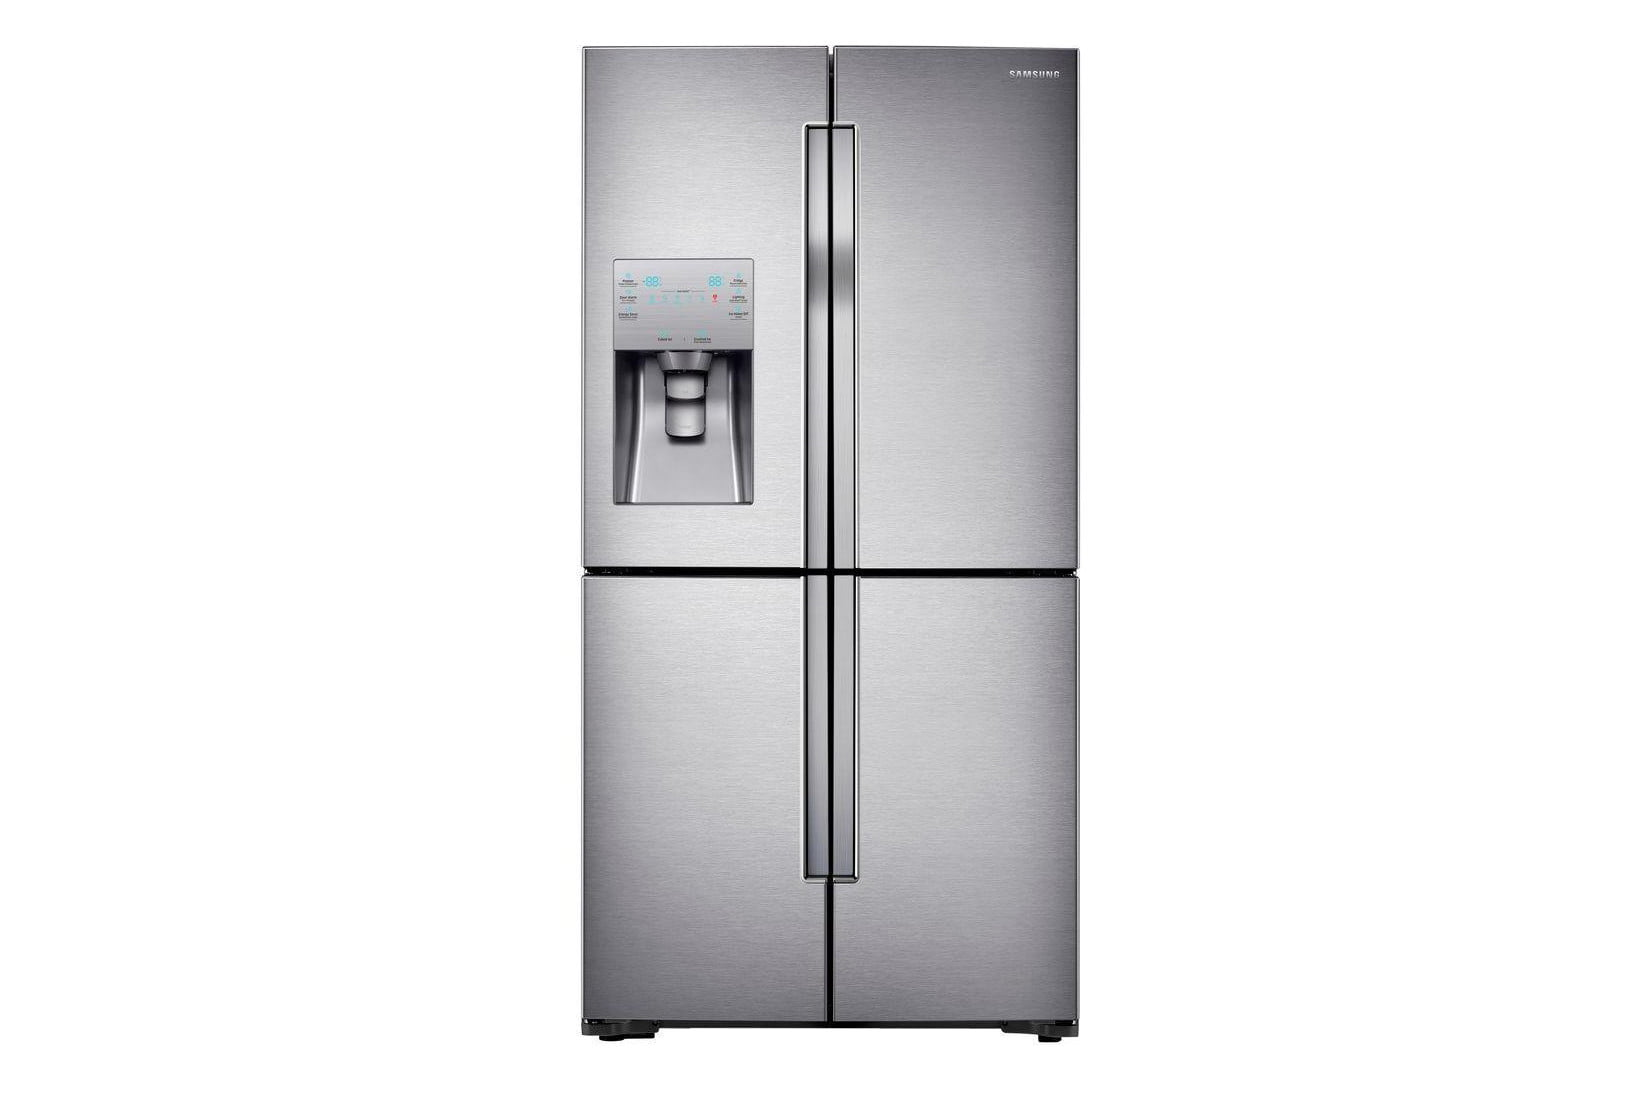 New Refrigerator Price The Best Refrigerators Of 2019 Picks For Every Budget Digital